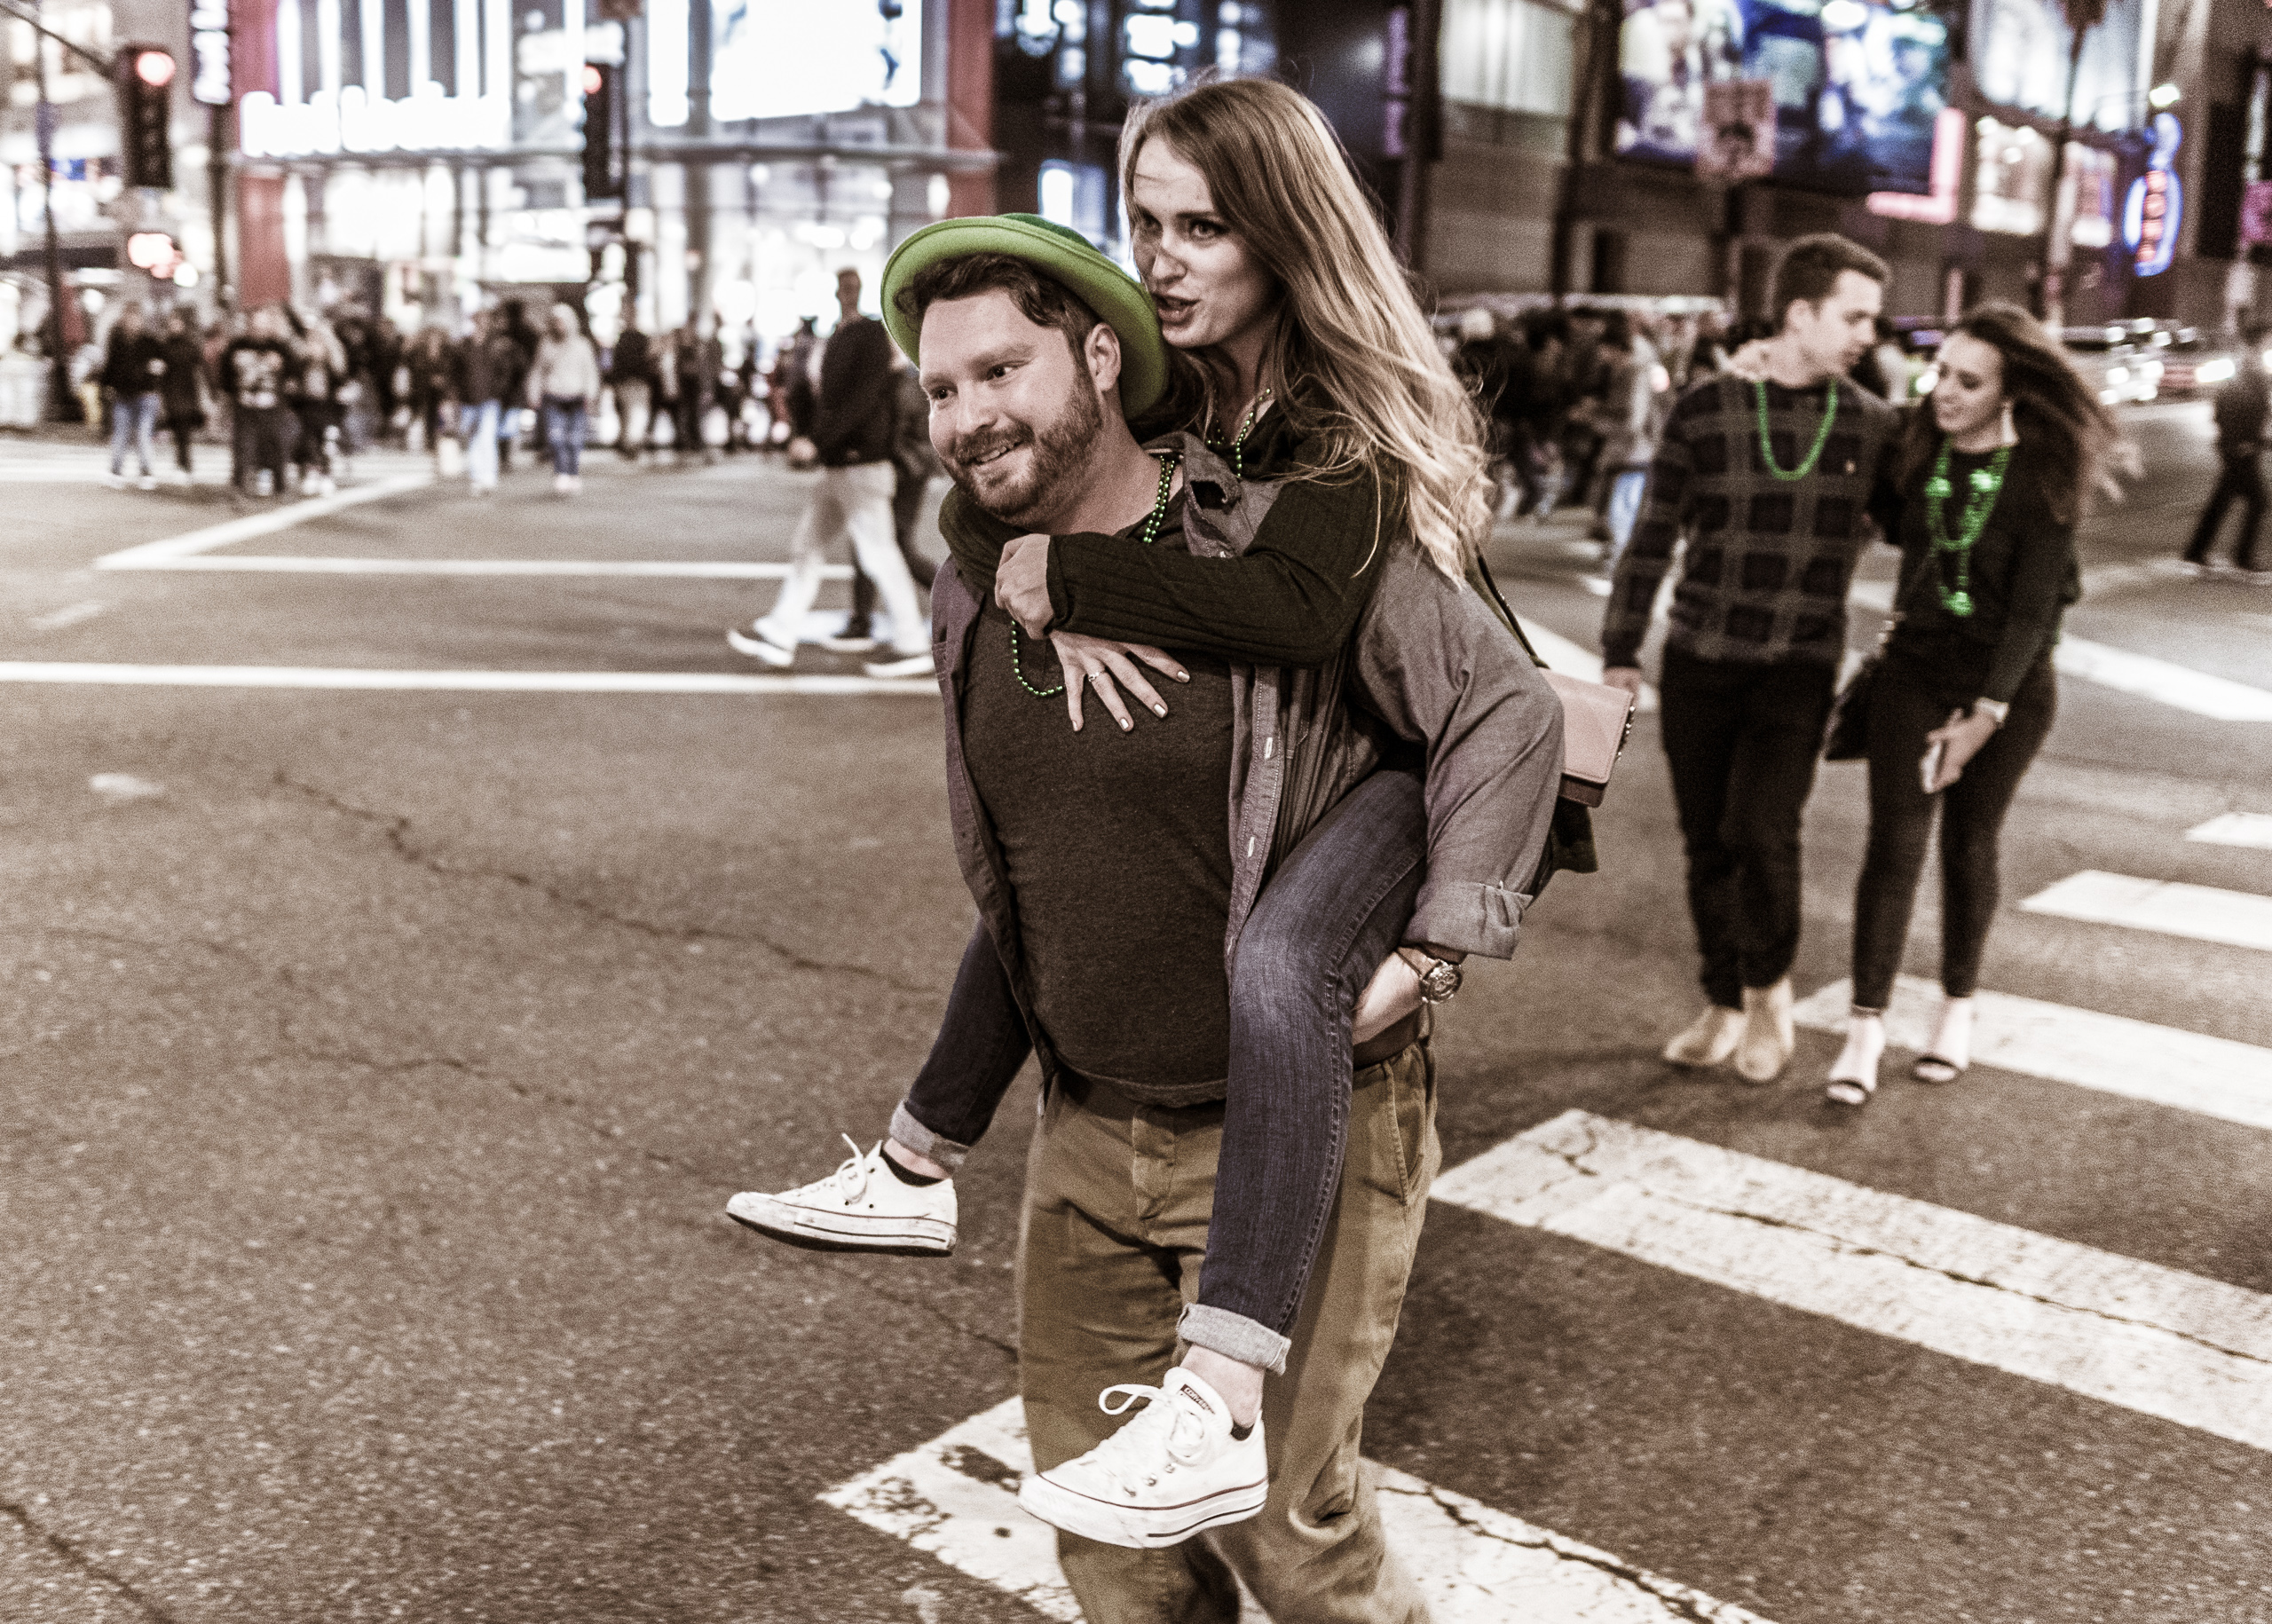 a man carries a woman on his back as they cross Hollywood Blvd on St. Patrick's Day night. He wears a green hat and they both wear green beads. Behind them another couple crosses the street, also wearing green beads around their neck.